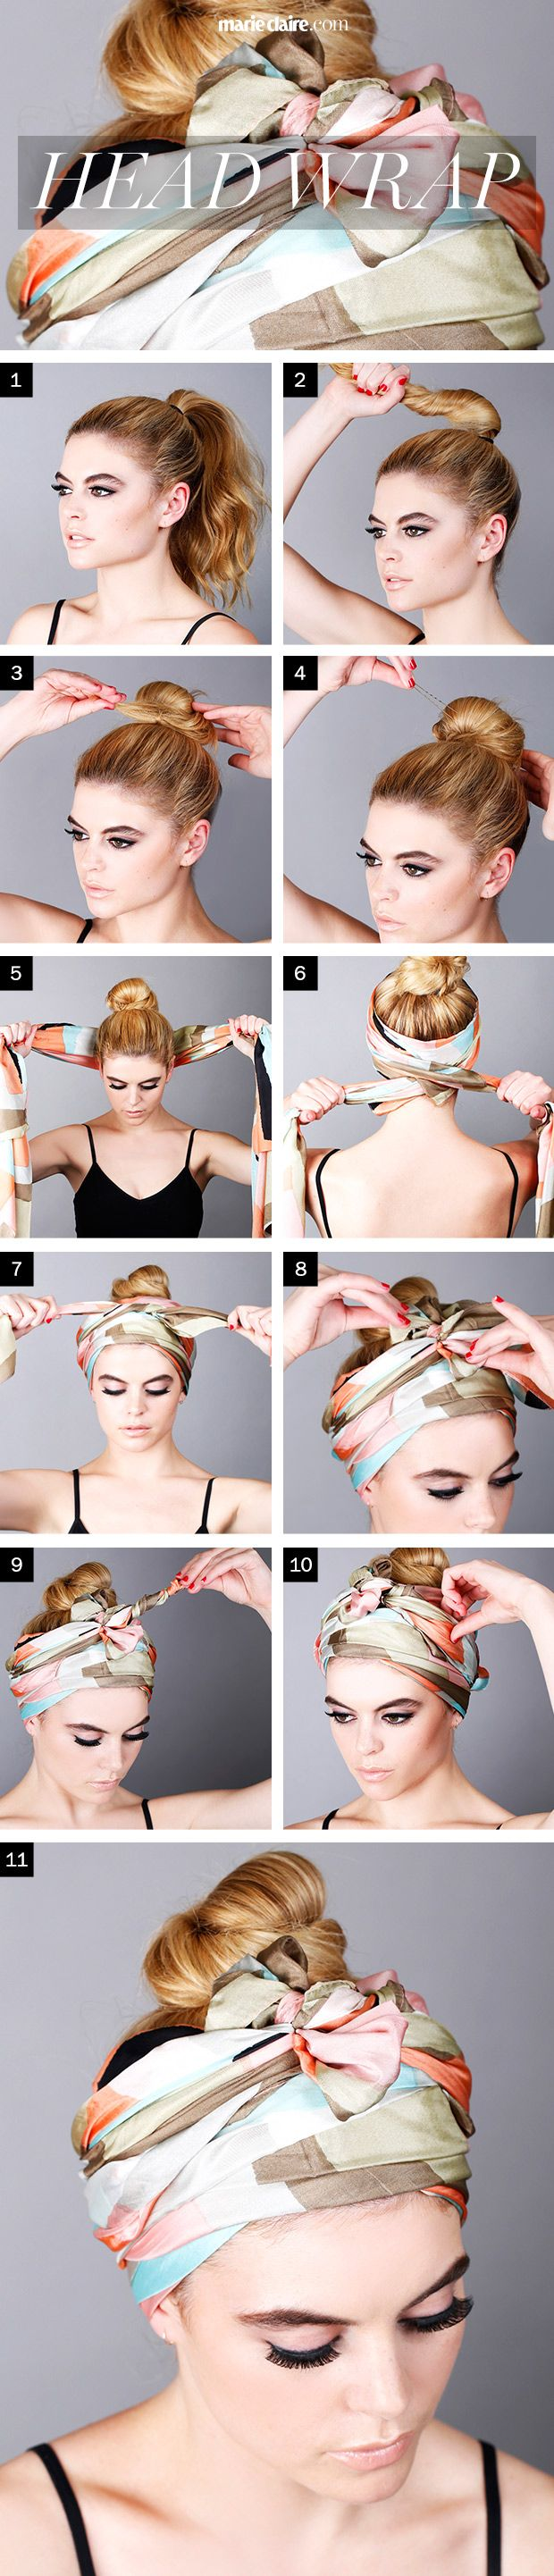 http://www.marieclaire.com/hair-beauty/how-to-tie-a-head-scarf?src=spr_FBPAGE